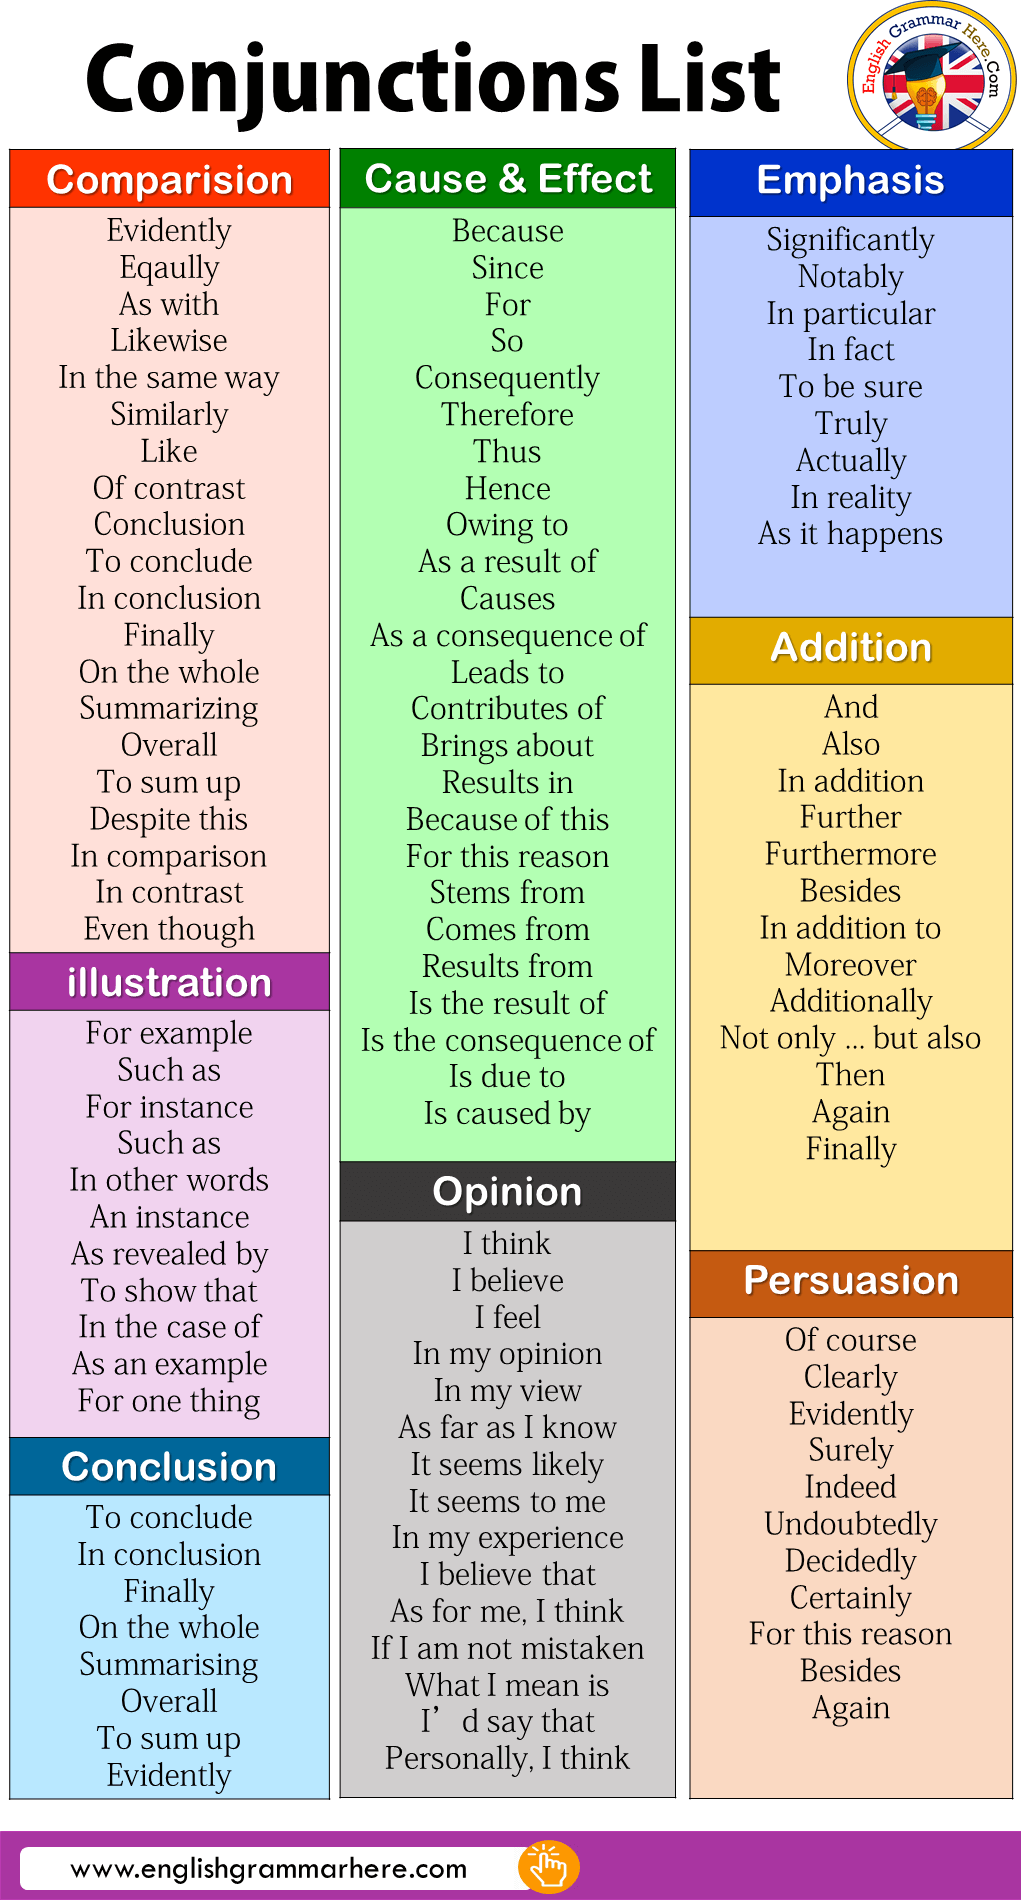 Detailed Conjunctions List in English